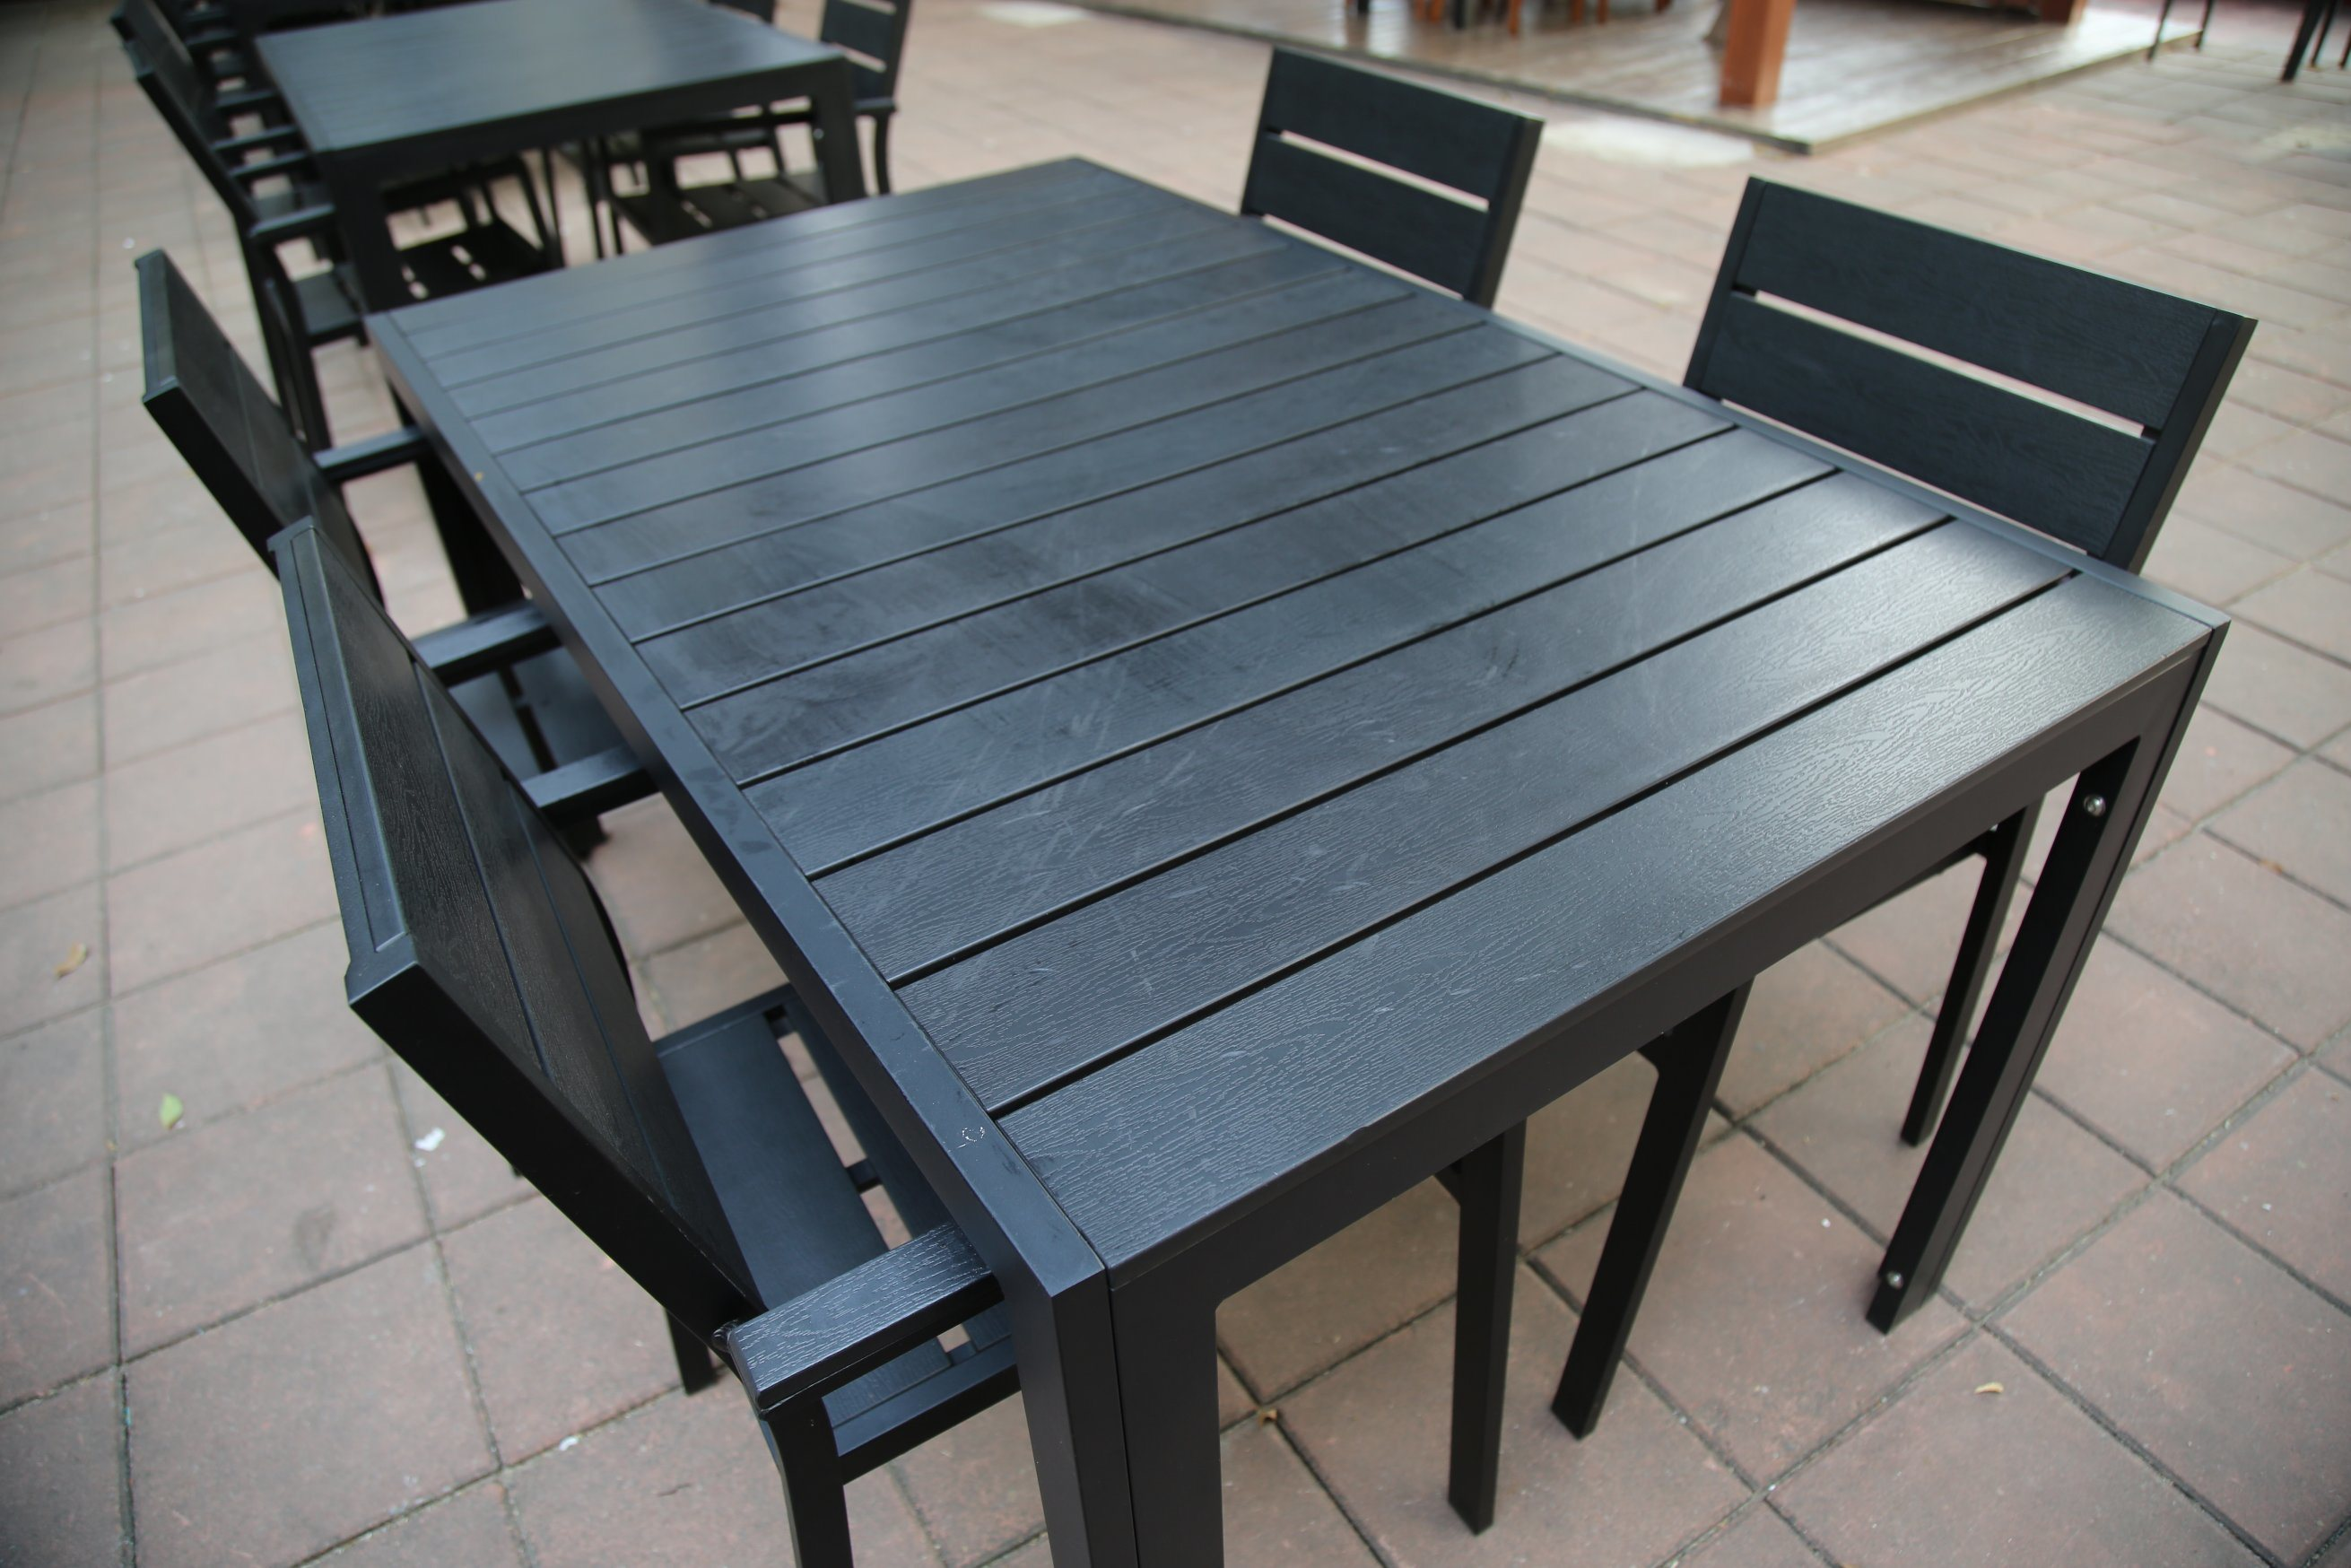 China American Standard Wholesale Outdoor Restaurant Polywood Coffee Wooden Dining Table Pwt 15503 Black China Outdoor Chair Dining Furniture